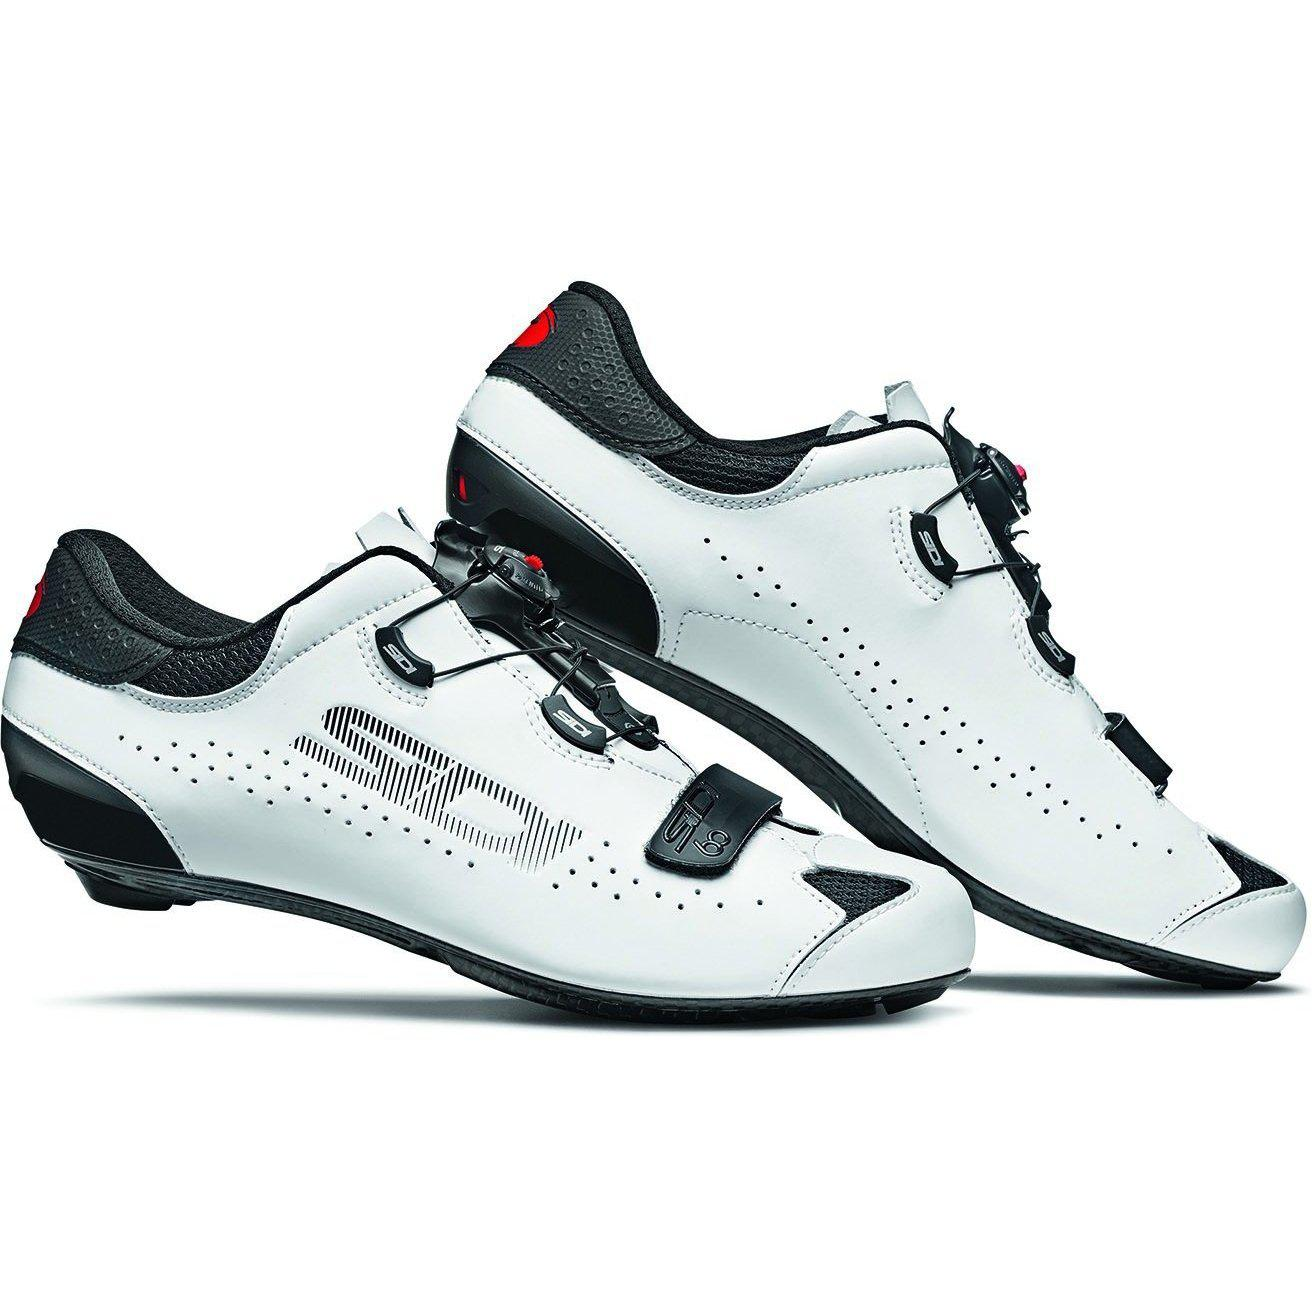 Sidi-Sidi Sixty Road Shoes-Black/White-38-SISIXTYNEBI38-saddleback-elite-performance-cycling